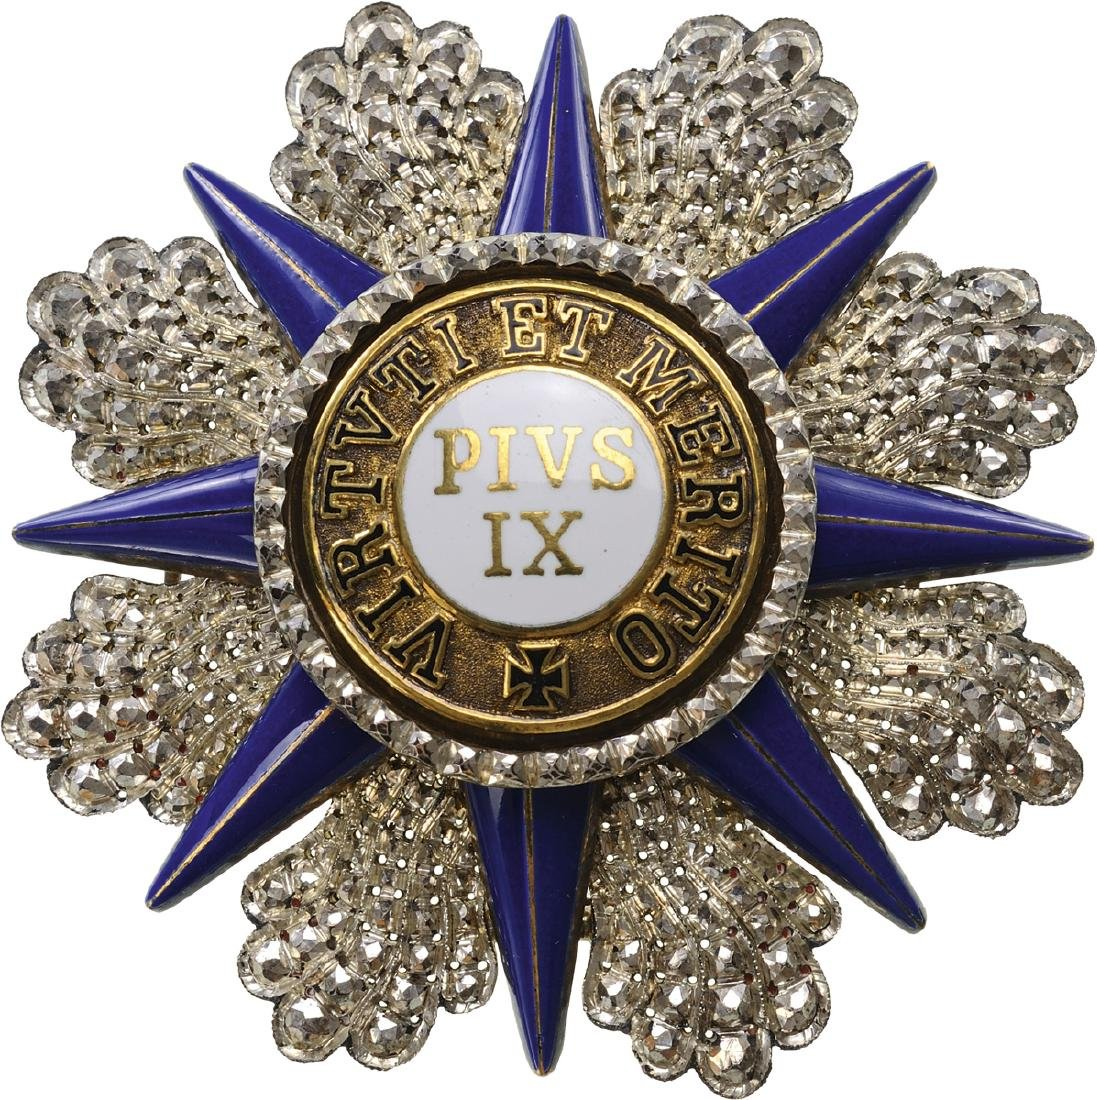 ORDER OF PIUS IX - 5